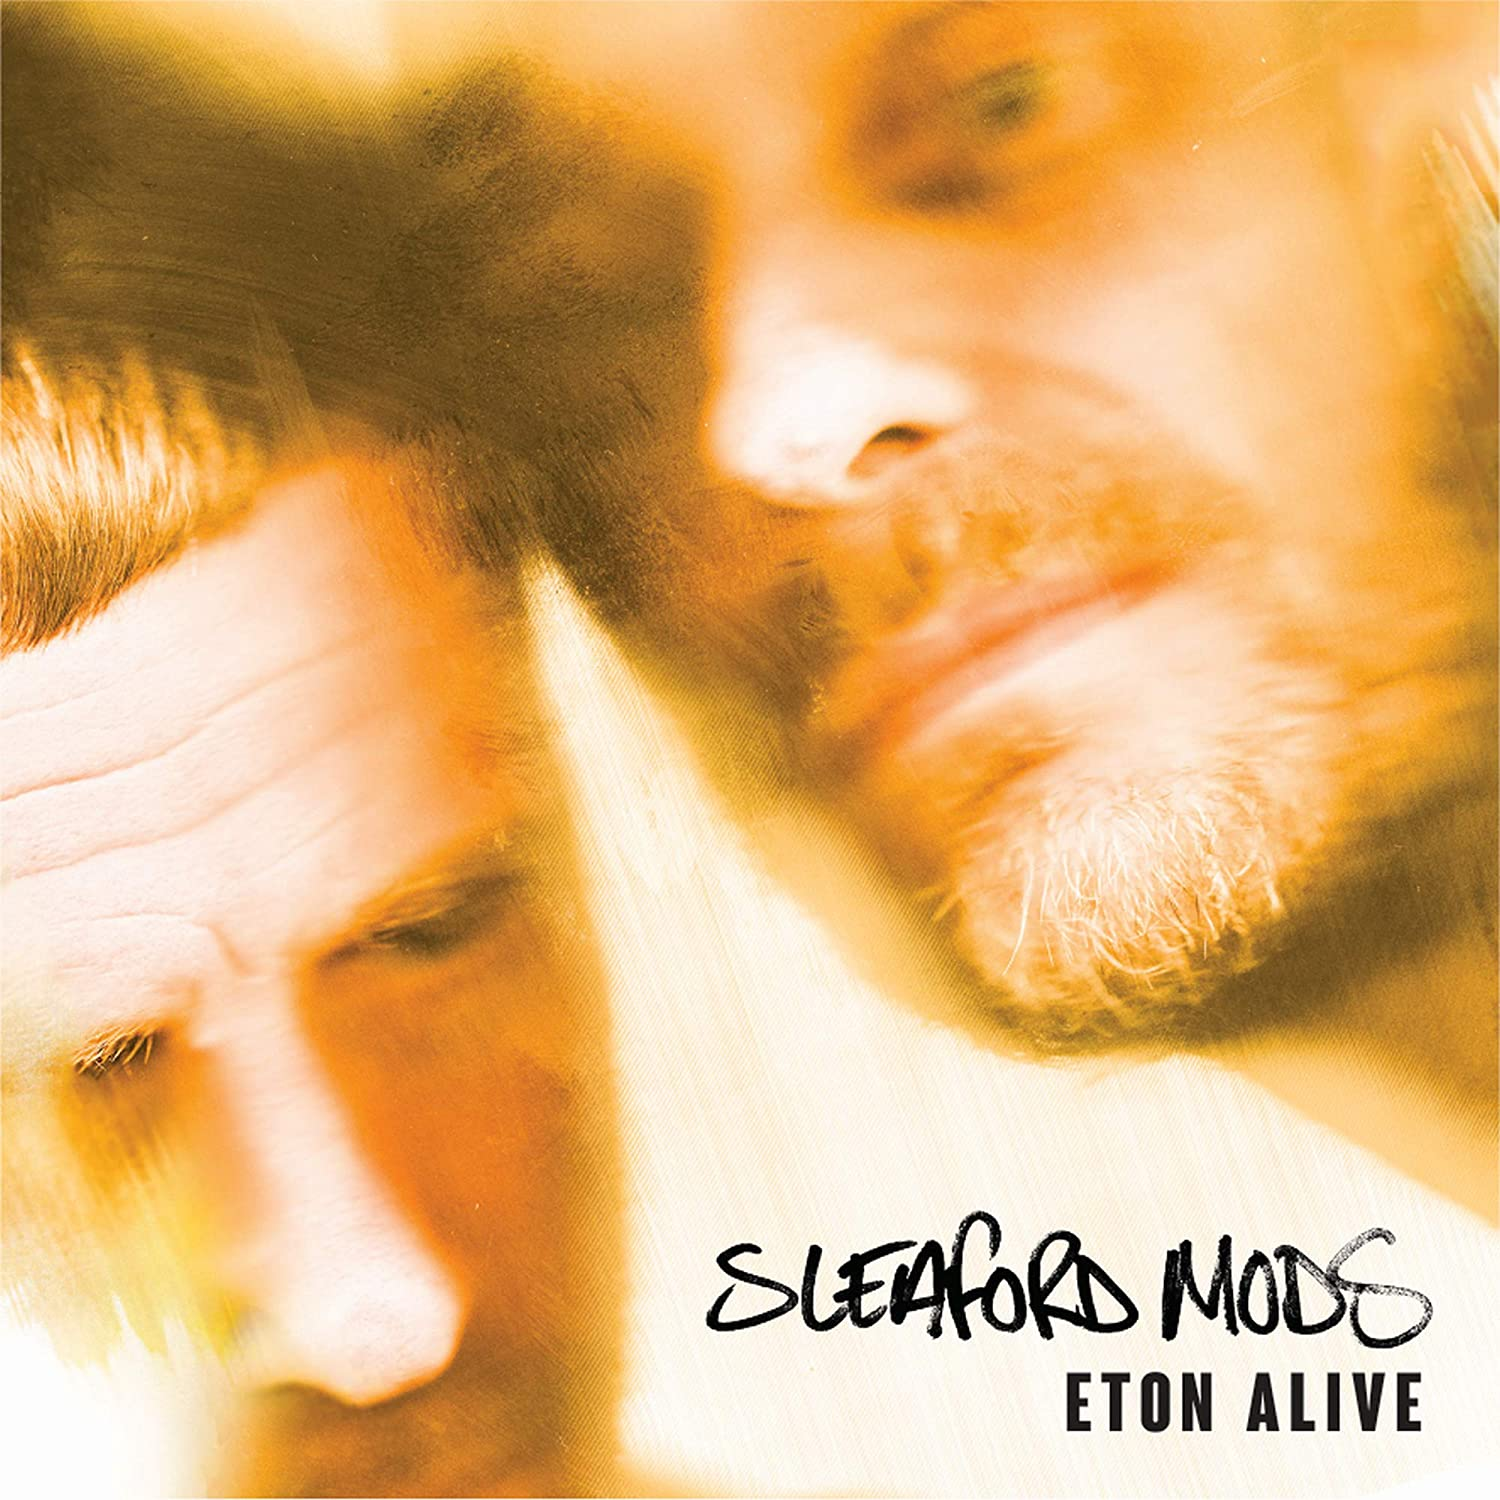 SLEAFORD MODS - Eton Alive - Amazon.com Music